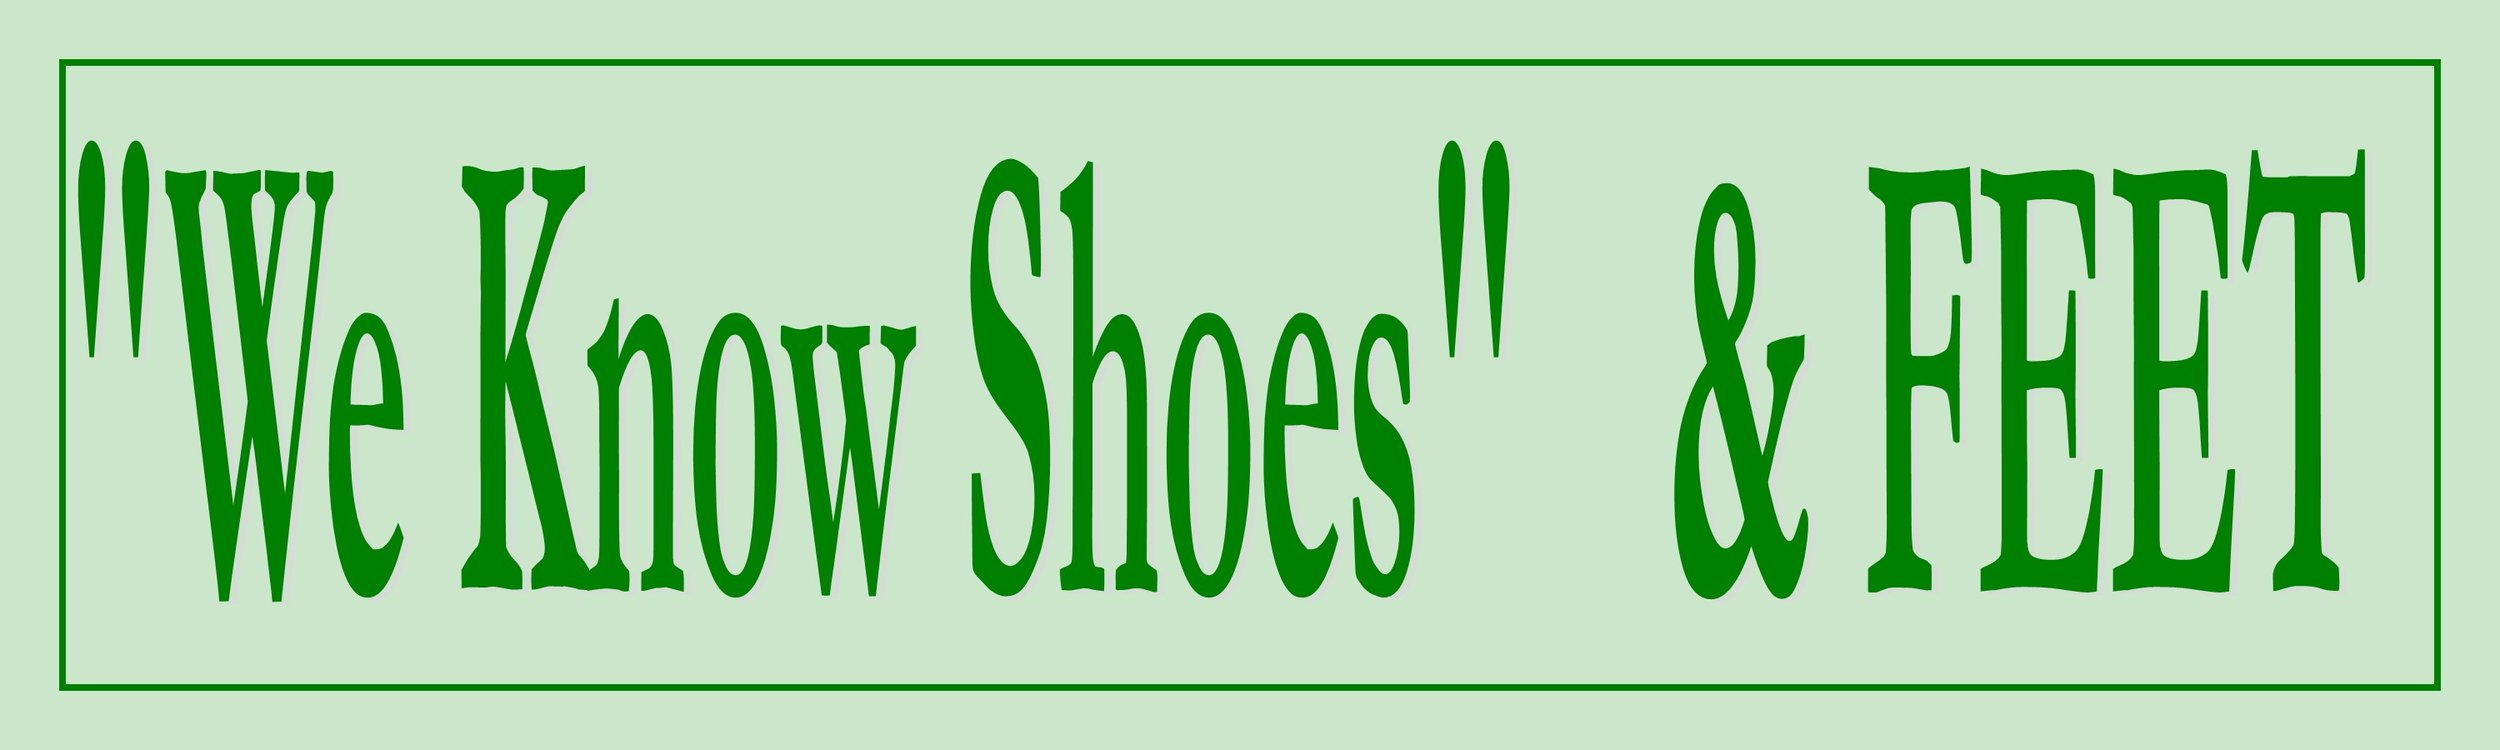 We Know Shoes.jpg